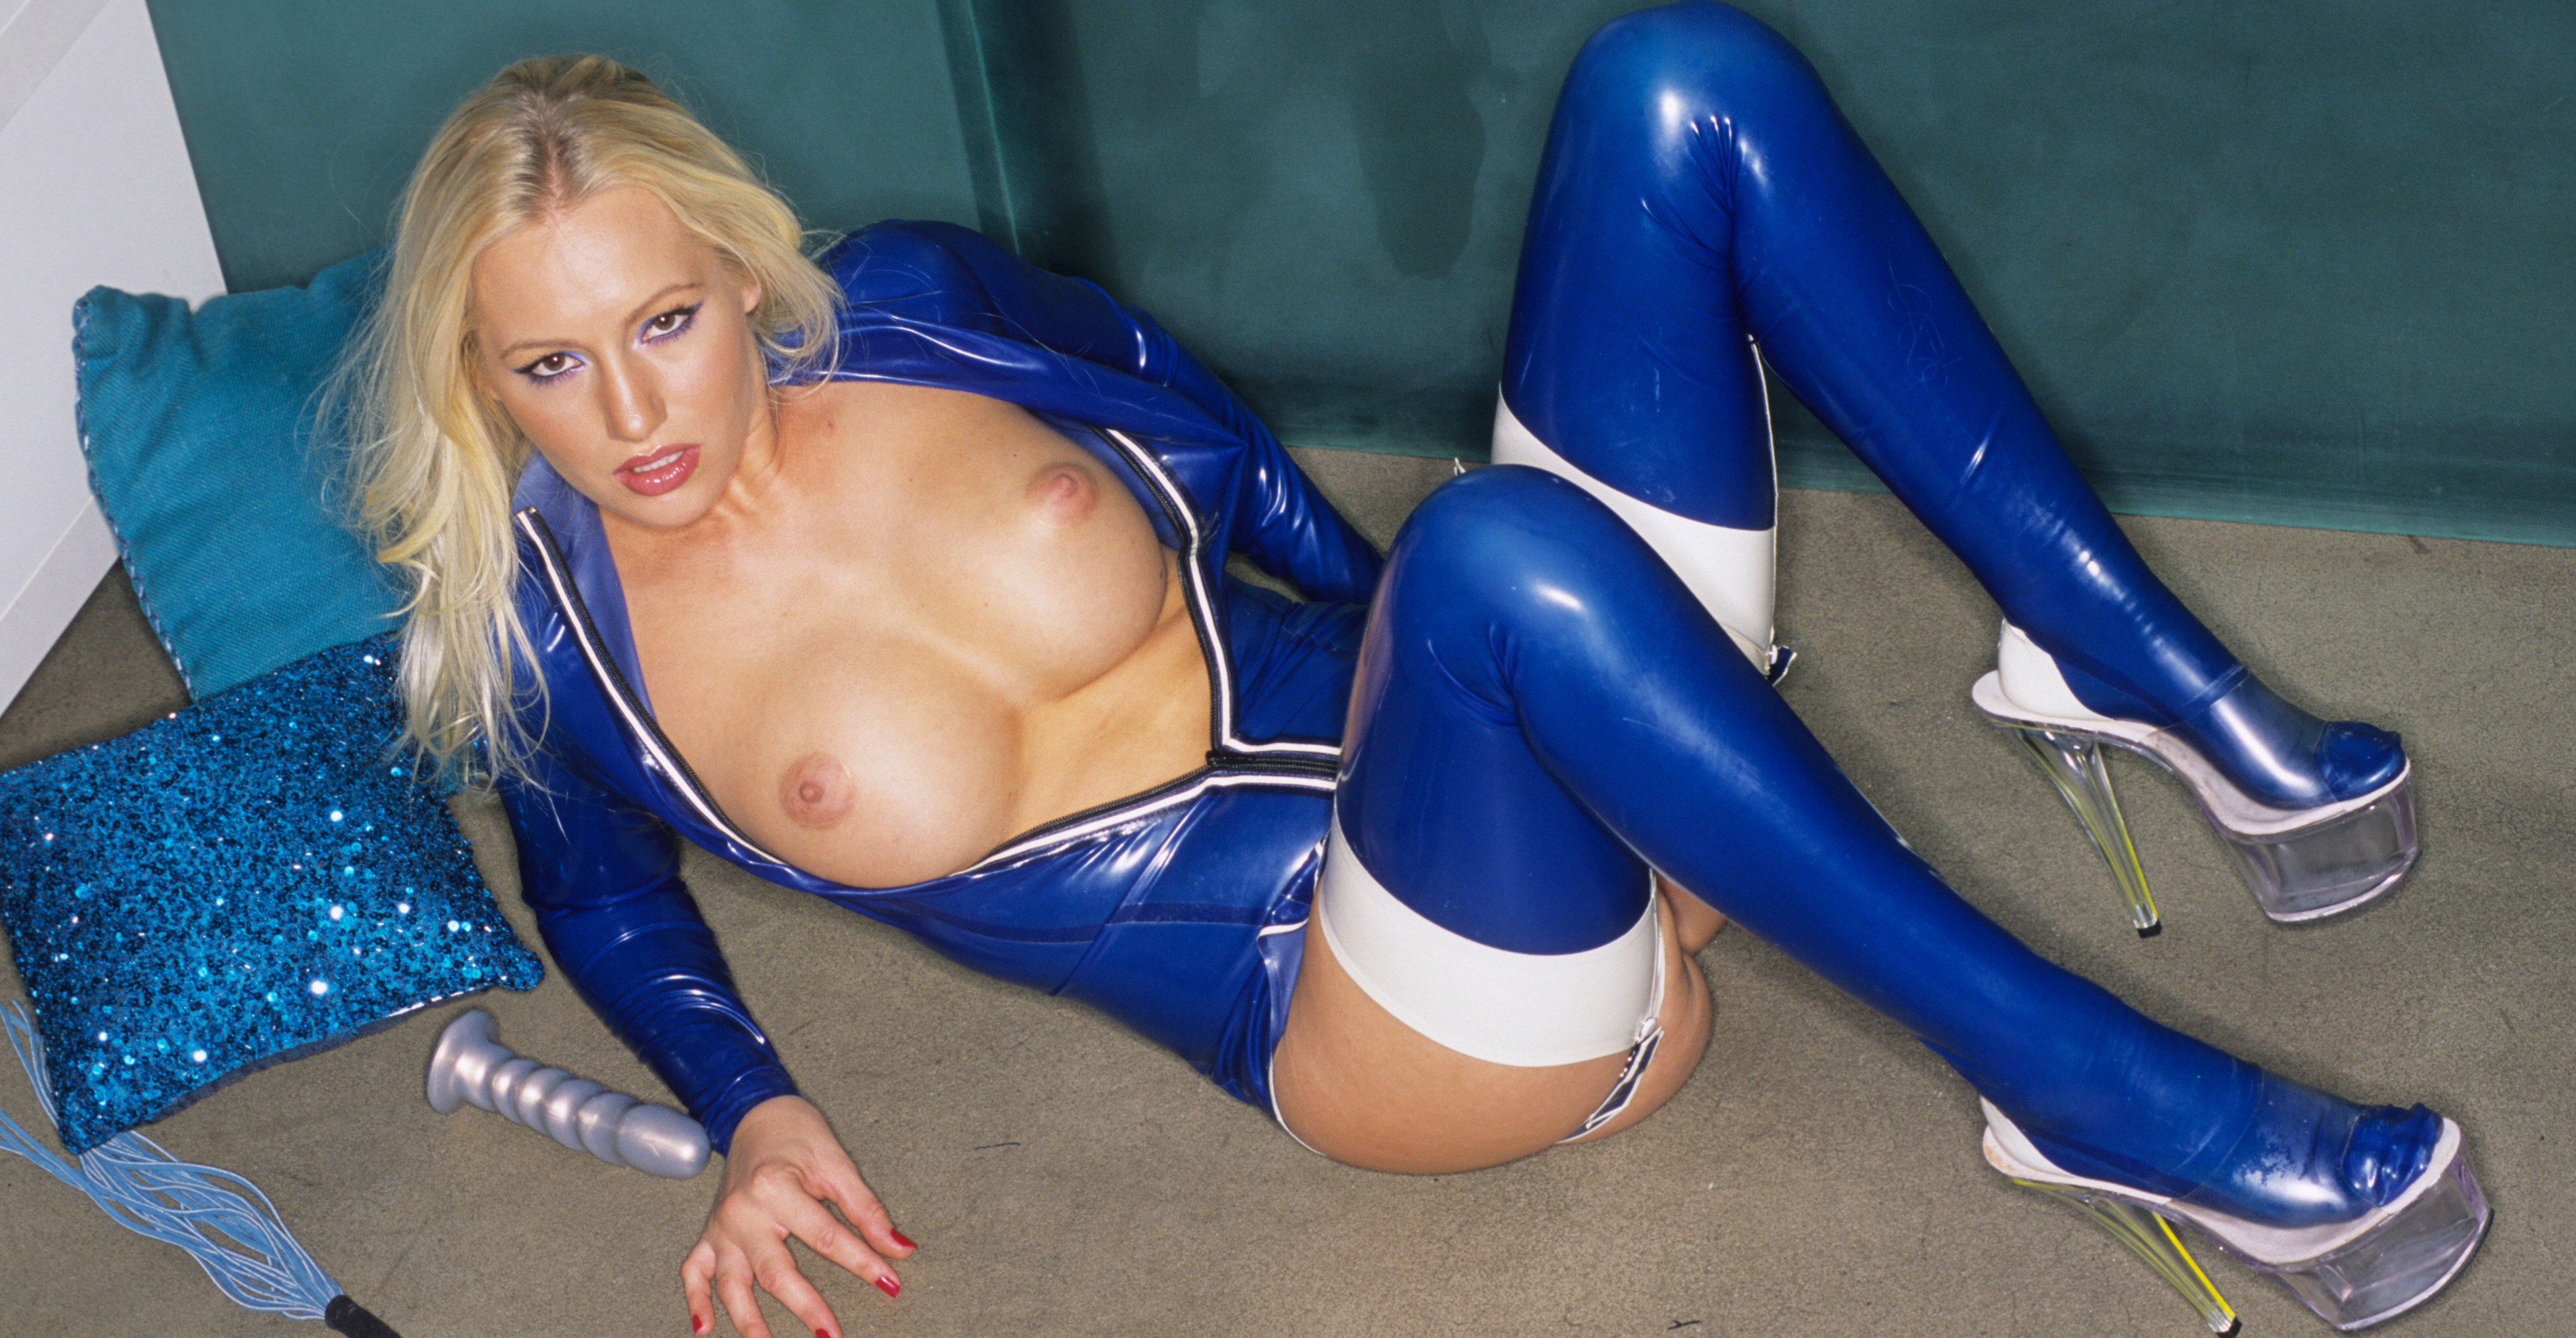 In shimmering blue. This svelte provocative babe is incased in a shinny shimmering near iridescent blue latex.  Her golden locks accent the radiance of the molded blue sumptuous body.  Two of most adorable and soft rounded breast you will ever see, explode from the glittering rubber skin.  She talks about her interest in latex and treats us to a view of her inner loveliness with some beautifully displayed open pink movements.